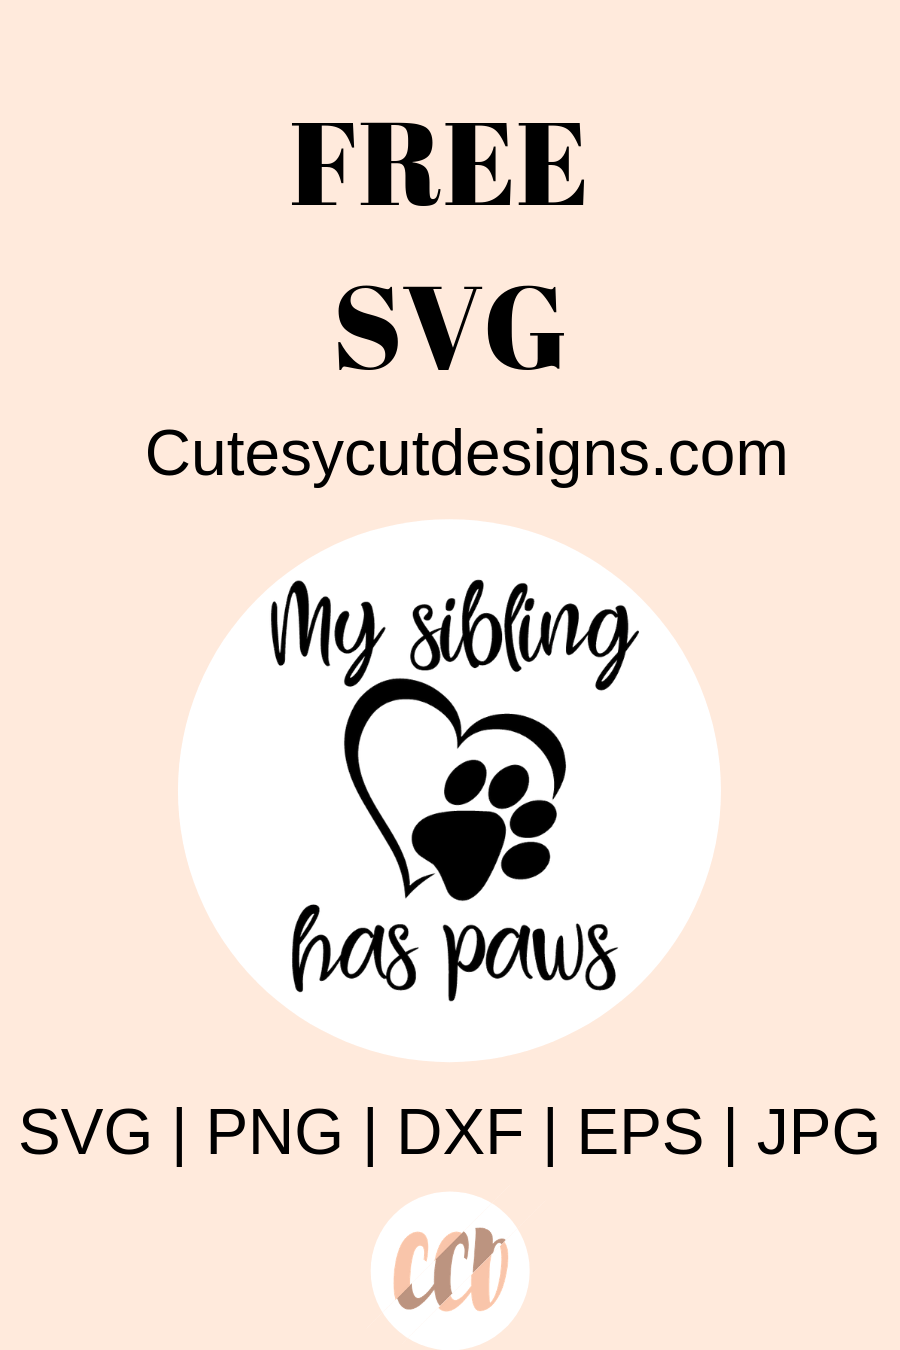 Pin on SVG Files